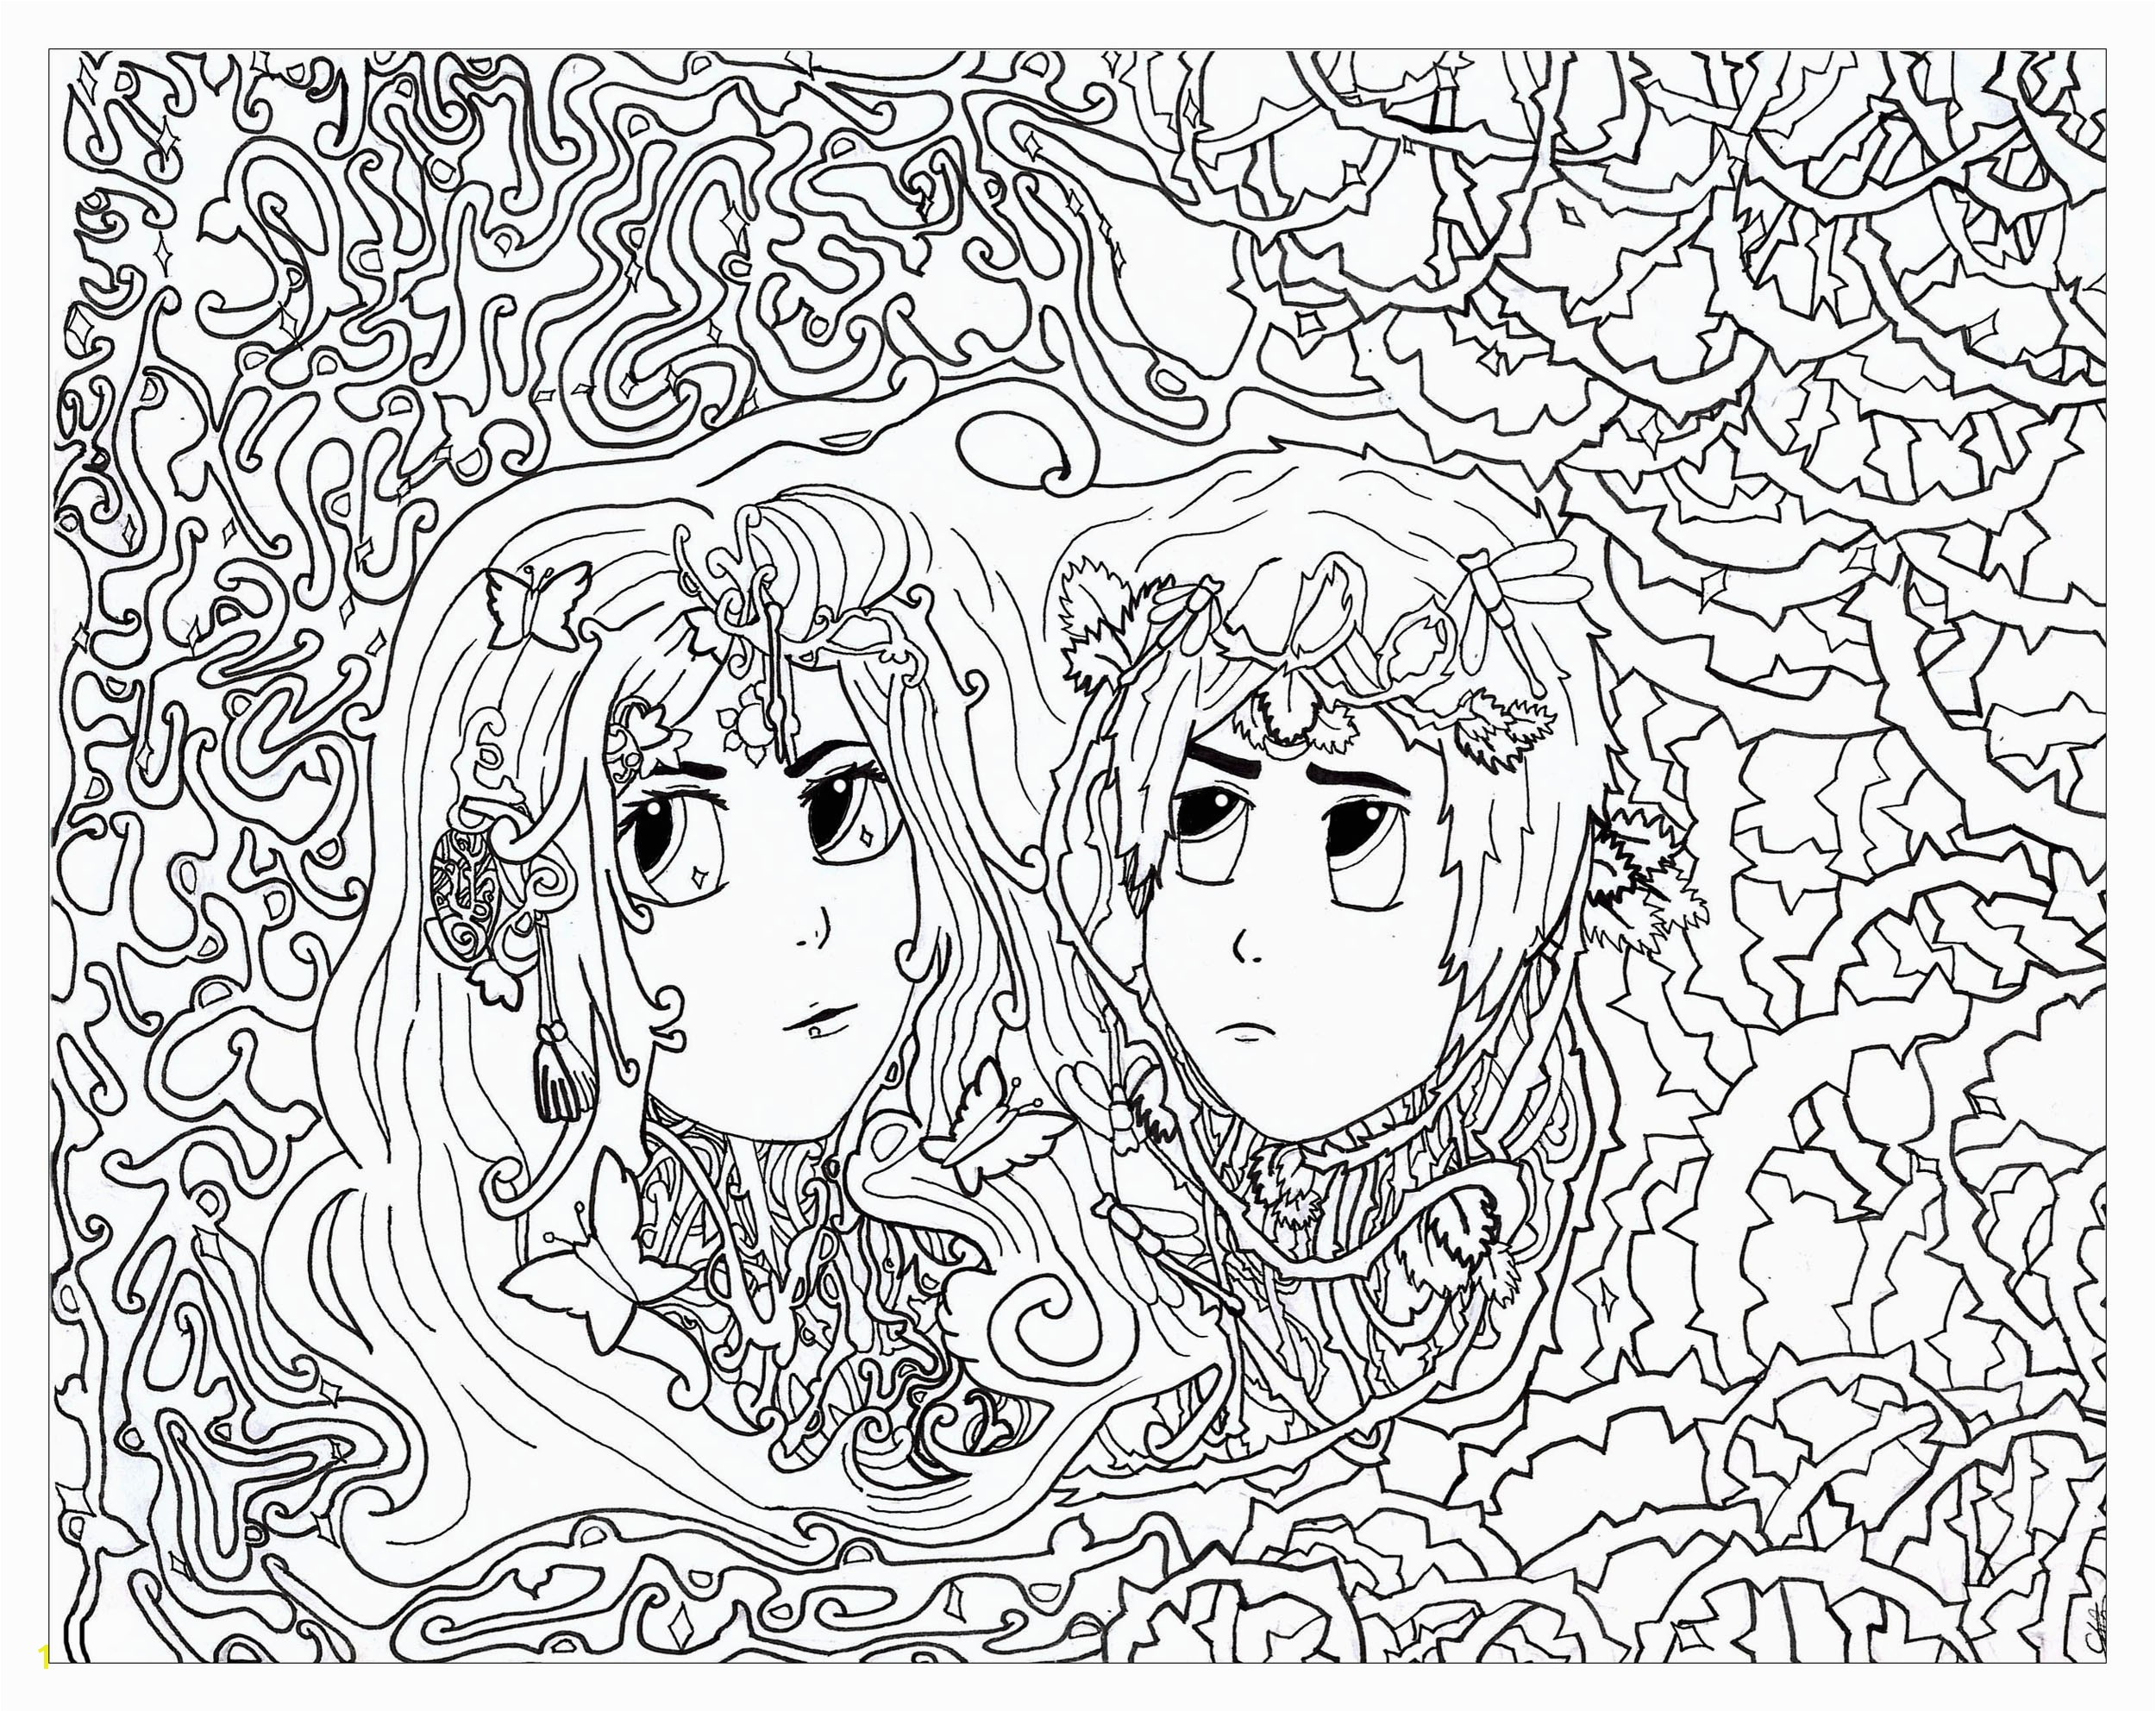 Coloring page inspired by The zodiac sign of Gemini